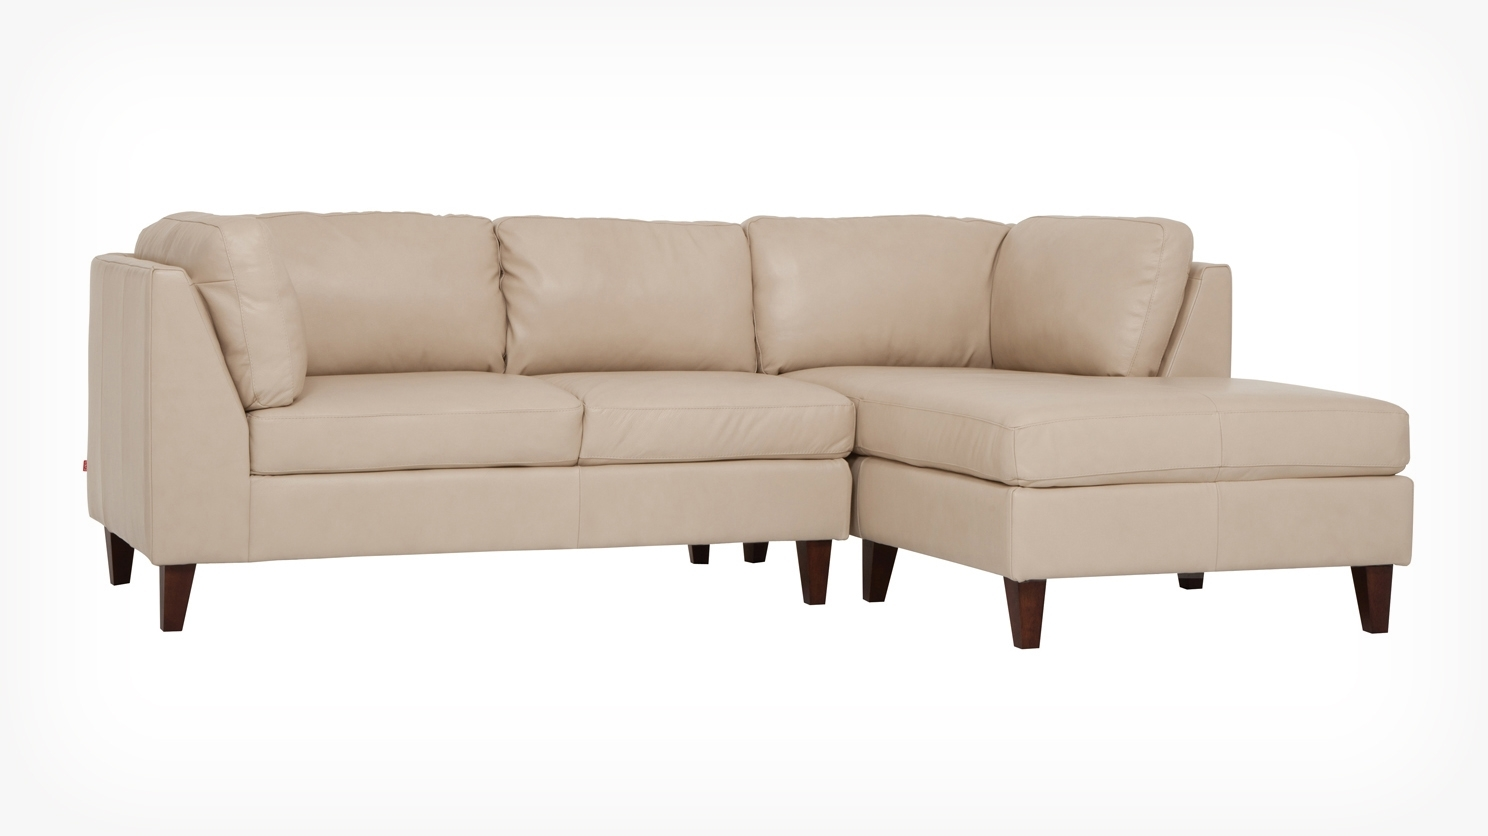 Salema 2 Piece Sectional Sofa With Chaise – Leather Throughout Eq3 Sectional Sofas (View 11 of 20)